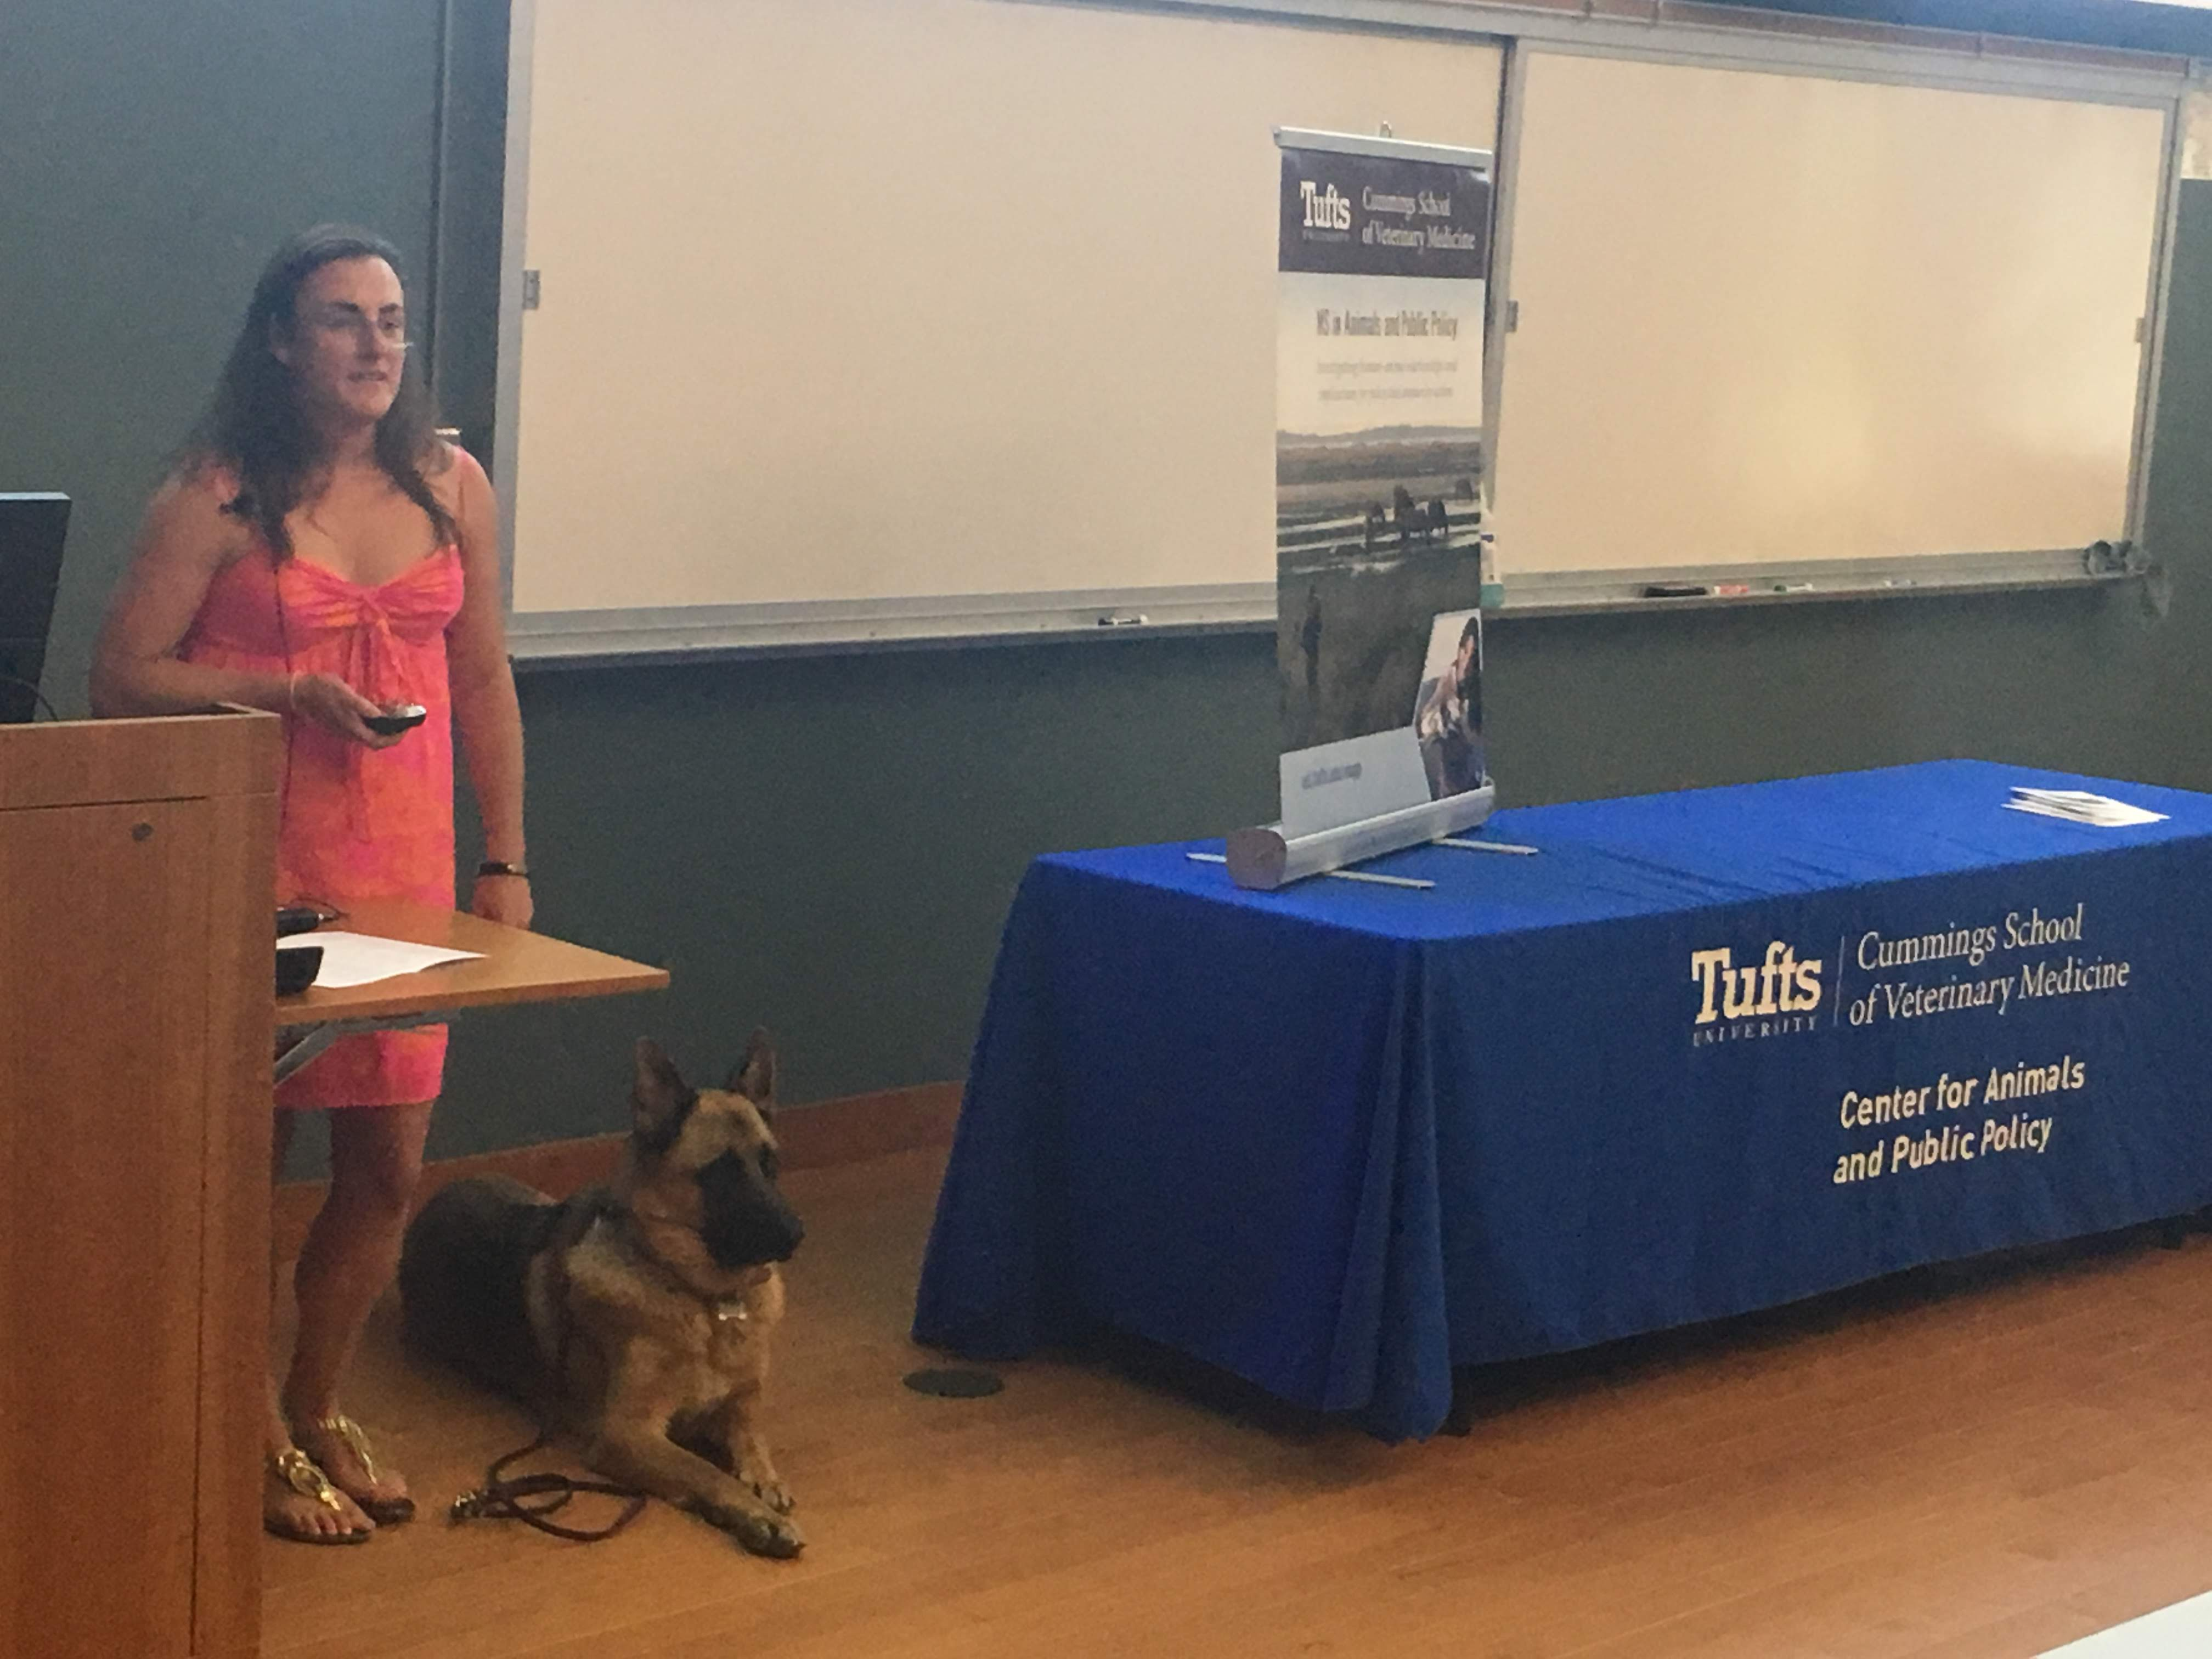 """Mikhaila Waldman presenting """"Lights, Critters, Action - Life Behind the Scenes at Critter Casting Animal Acting Agency"""" MAPP externship experience"""